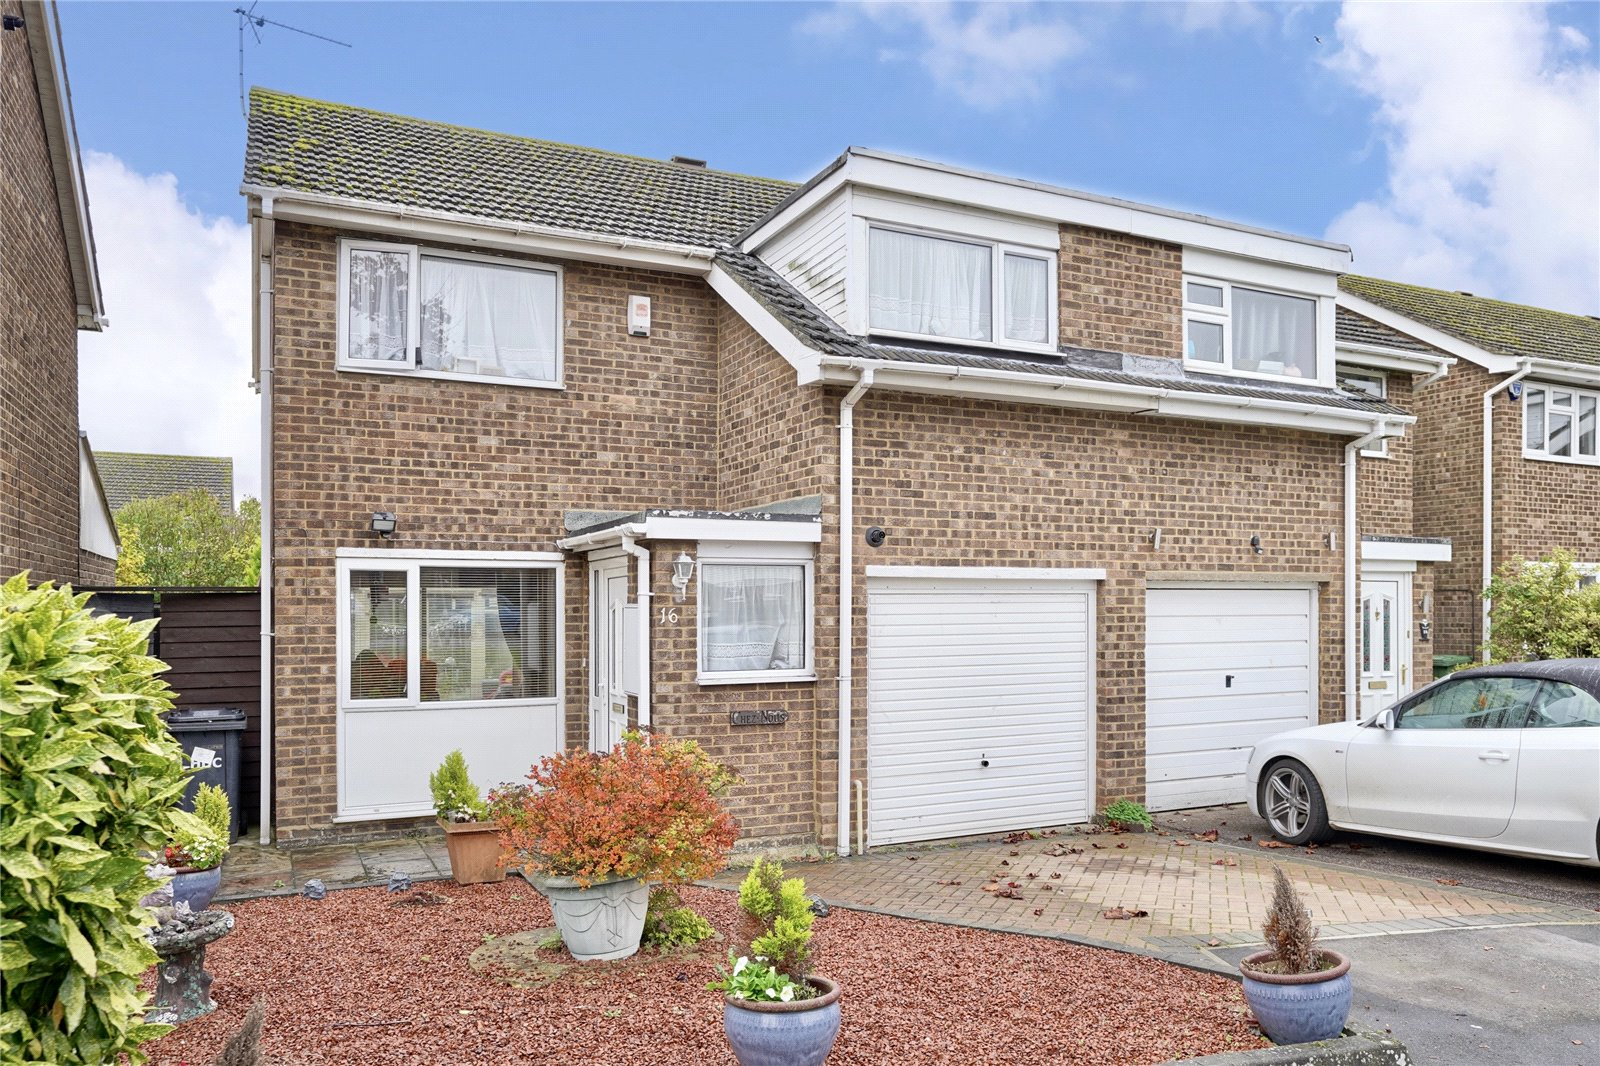 3 bed house for sale in Eaton Ford, Gainsborough Avenue, PE19 7RJ, PE19